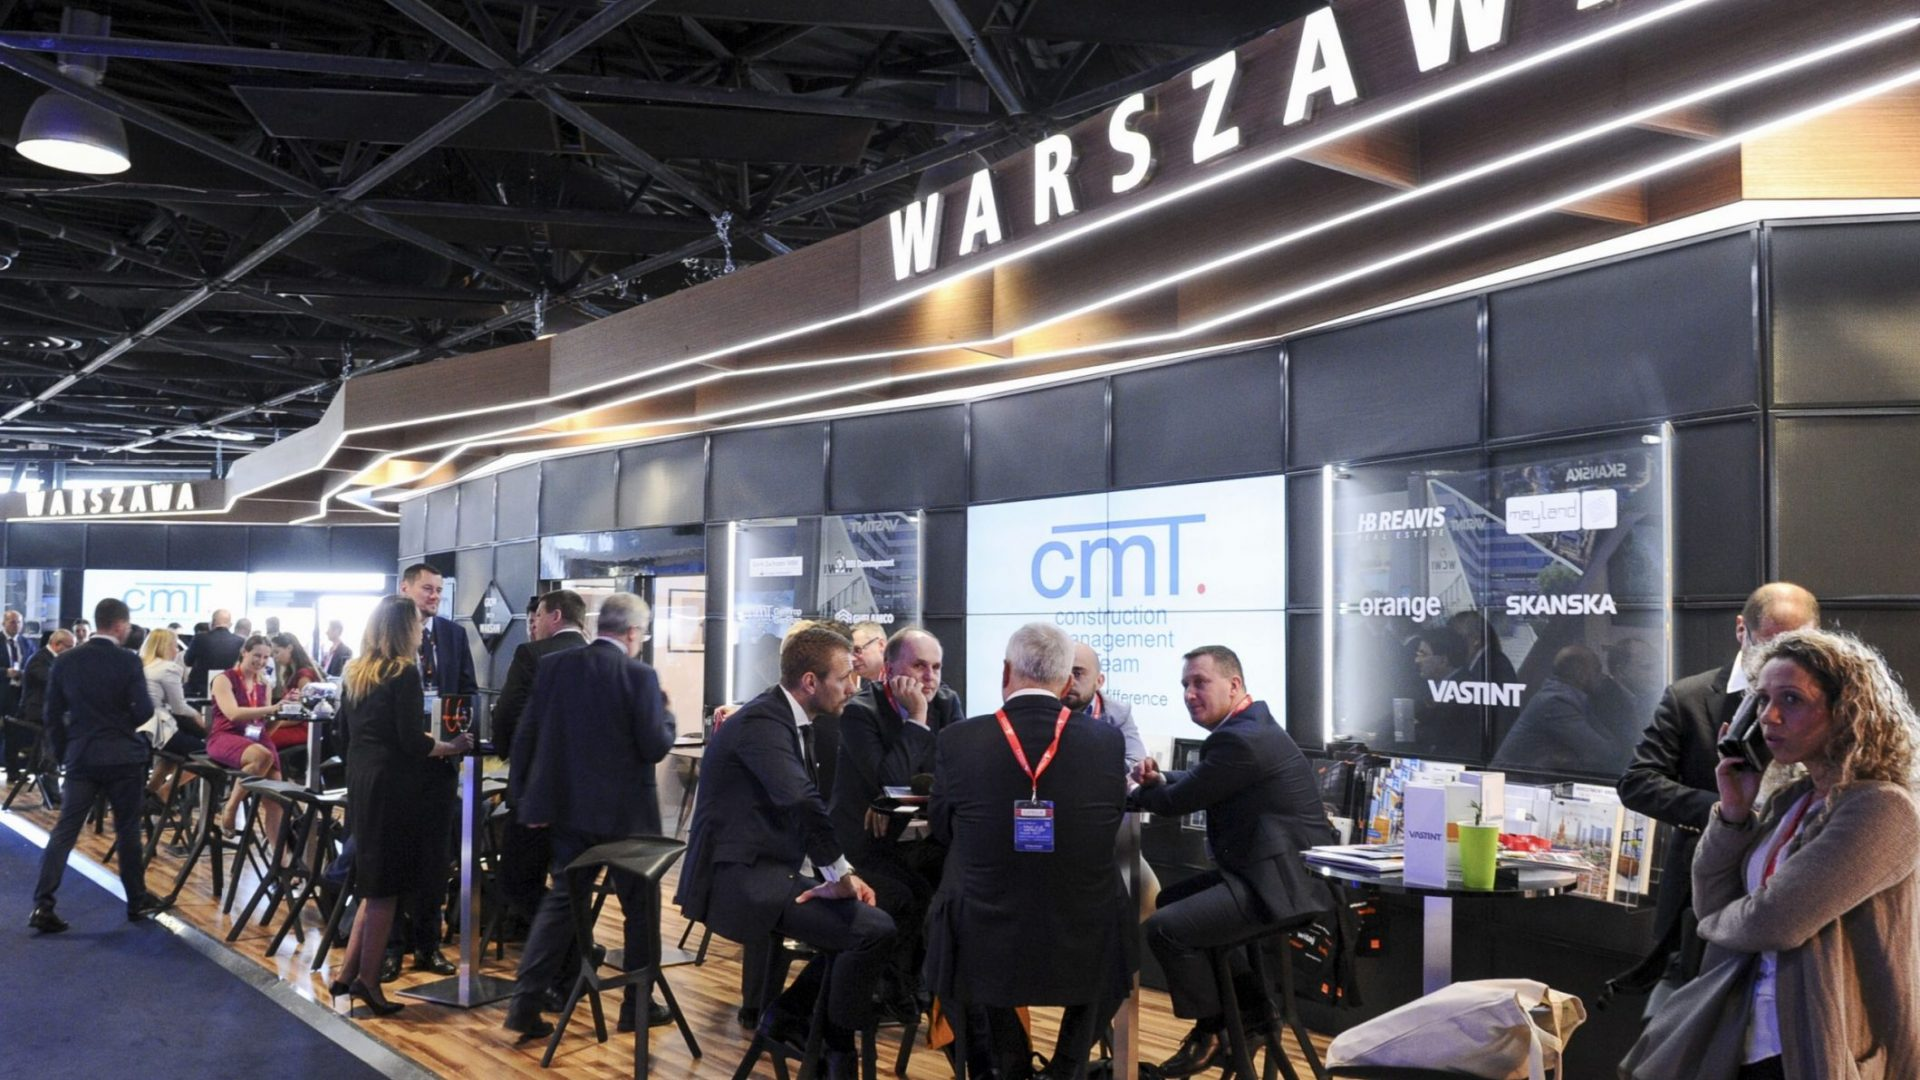 The Warsaw stand at MIPIM has traditionally been the centre point of Poland's presence. Other exhibitors from Poland have included the cities of Gdańsk, Katowice, Kraków, Łódź, Poznań and Wrocław